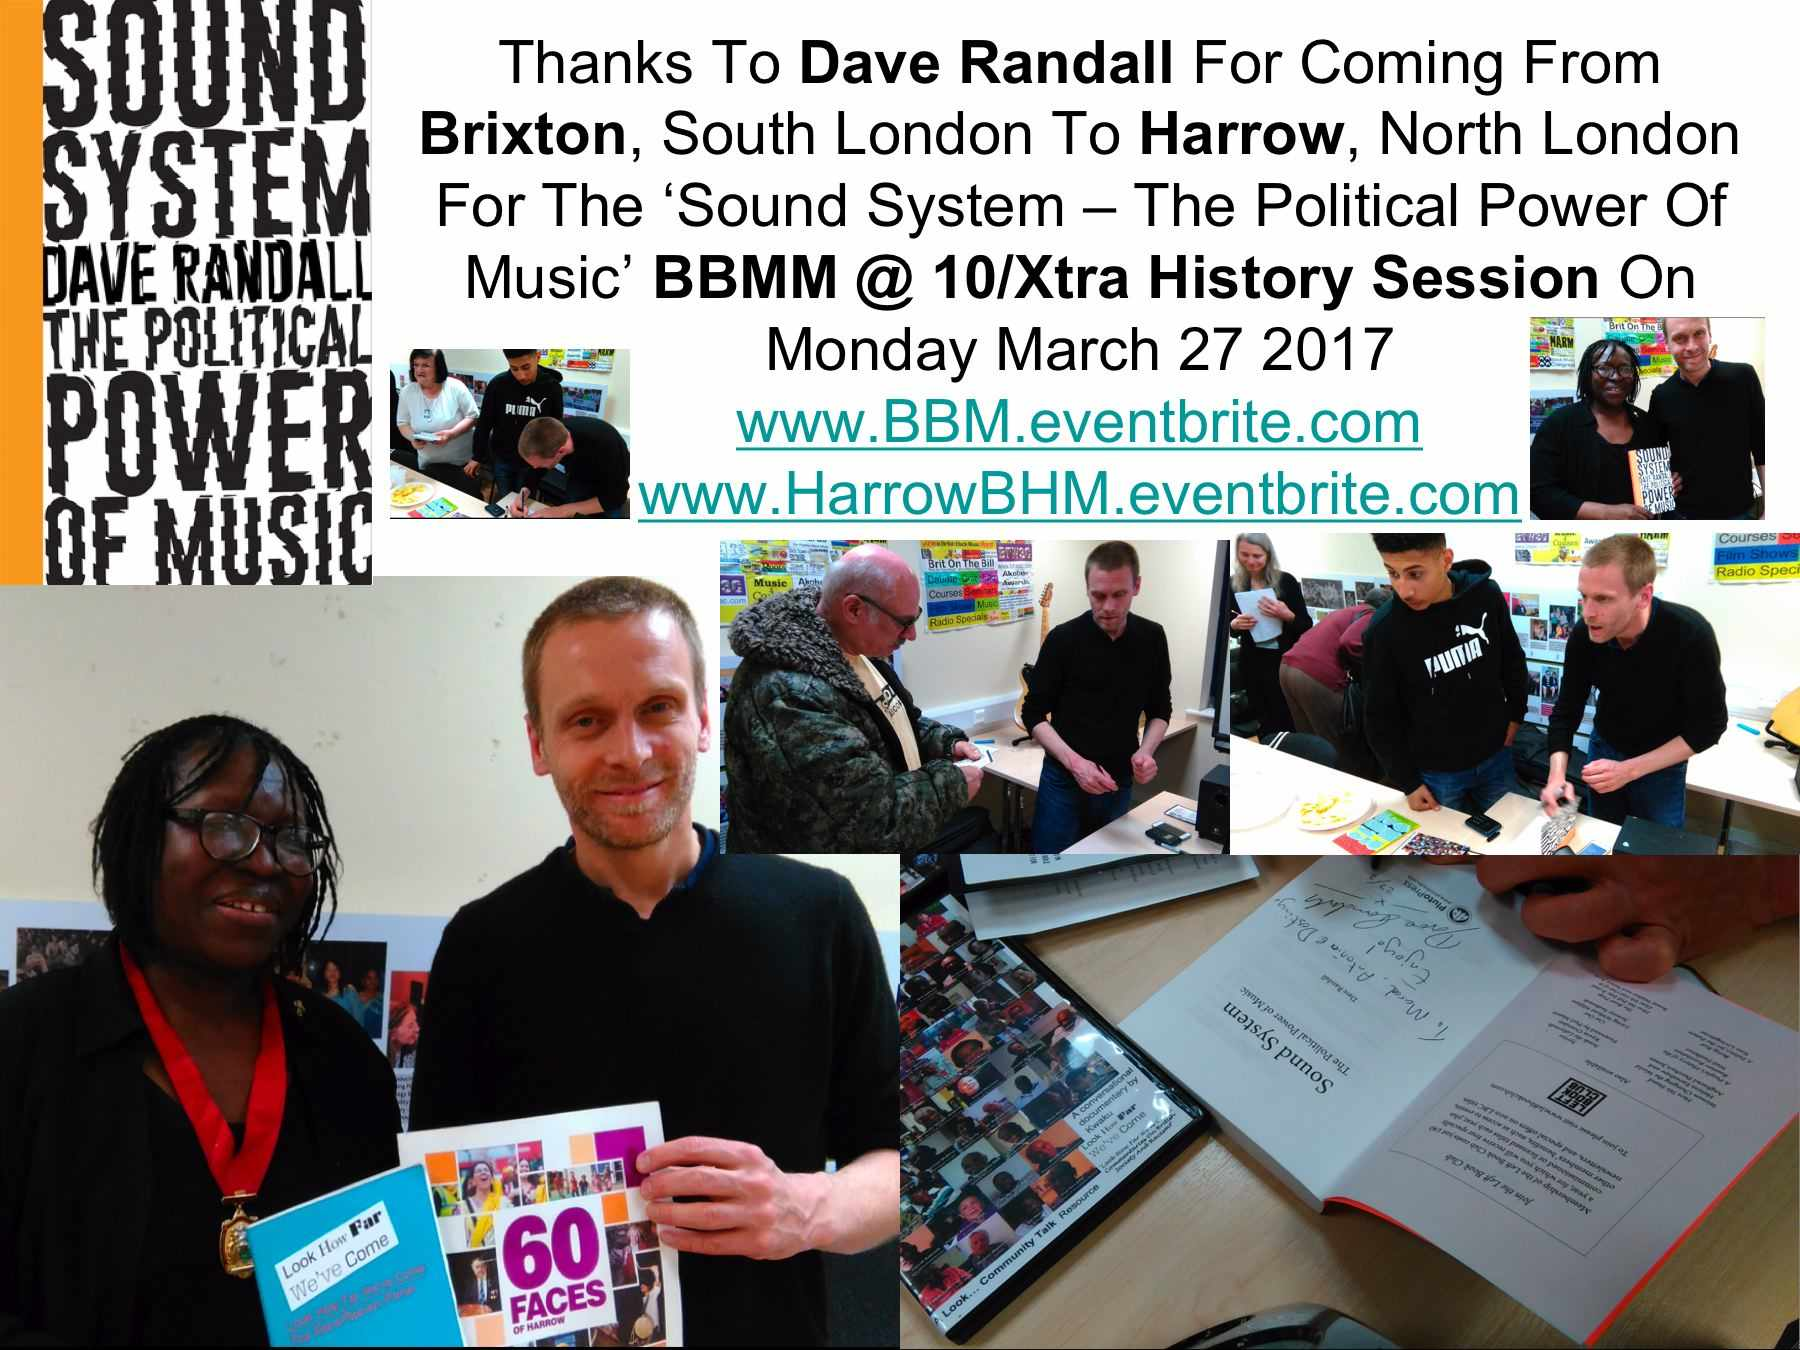 Dave Randall At Xtra History Session montage